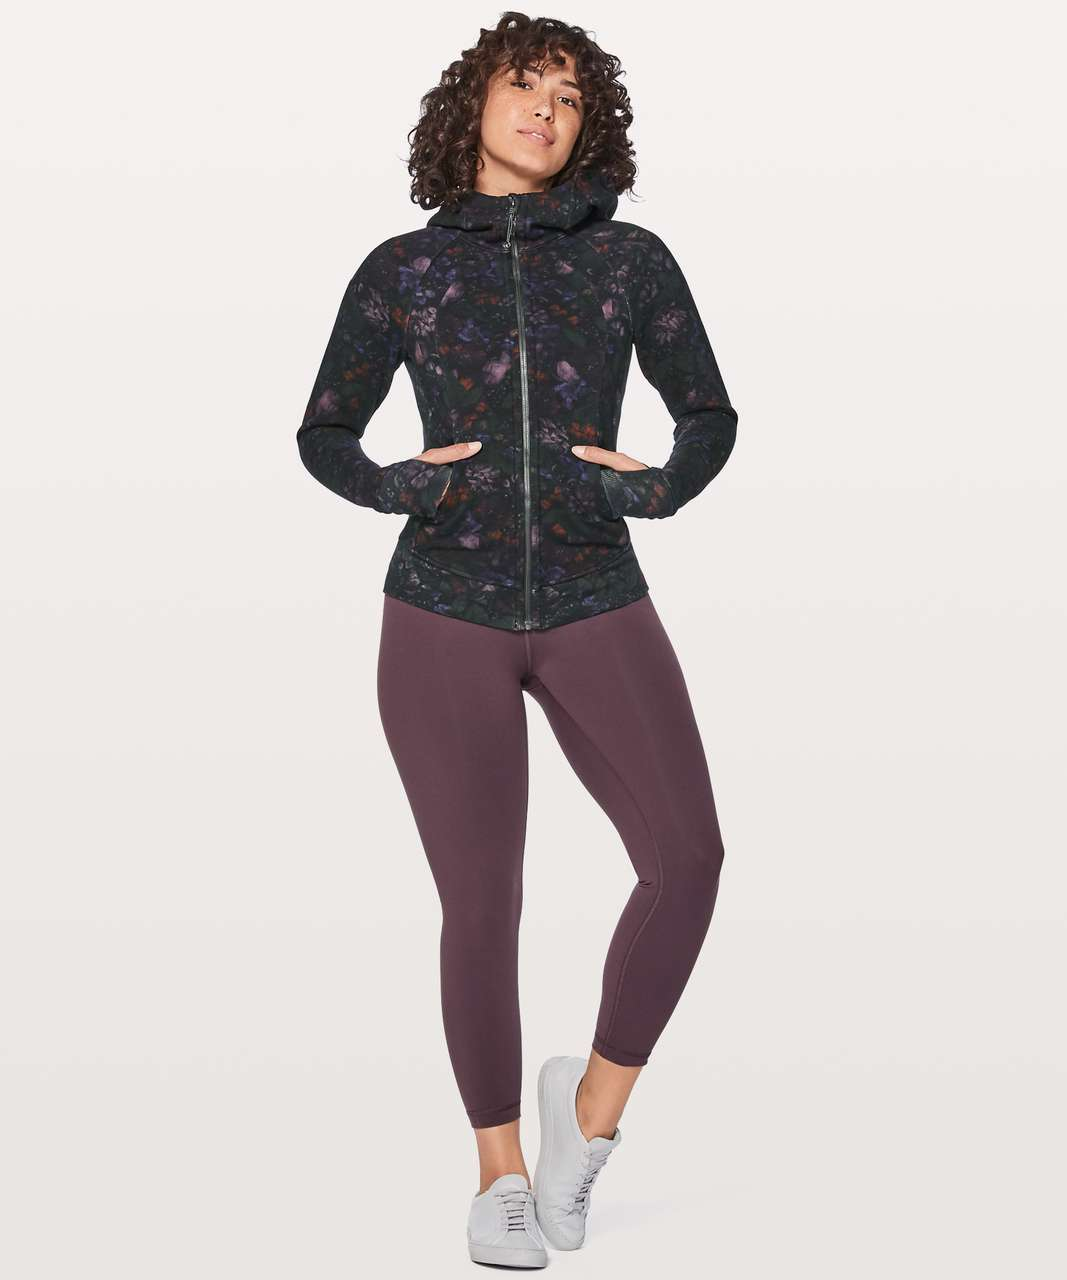 Lululemon Scuba Hoodie Light Cotton Fleece - Frozen Flourish Multi / Black